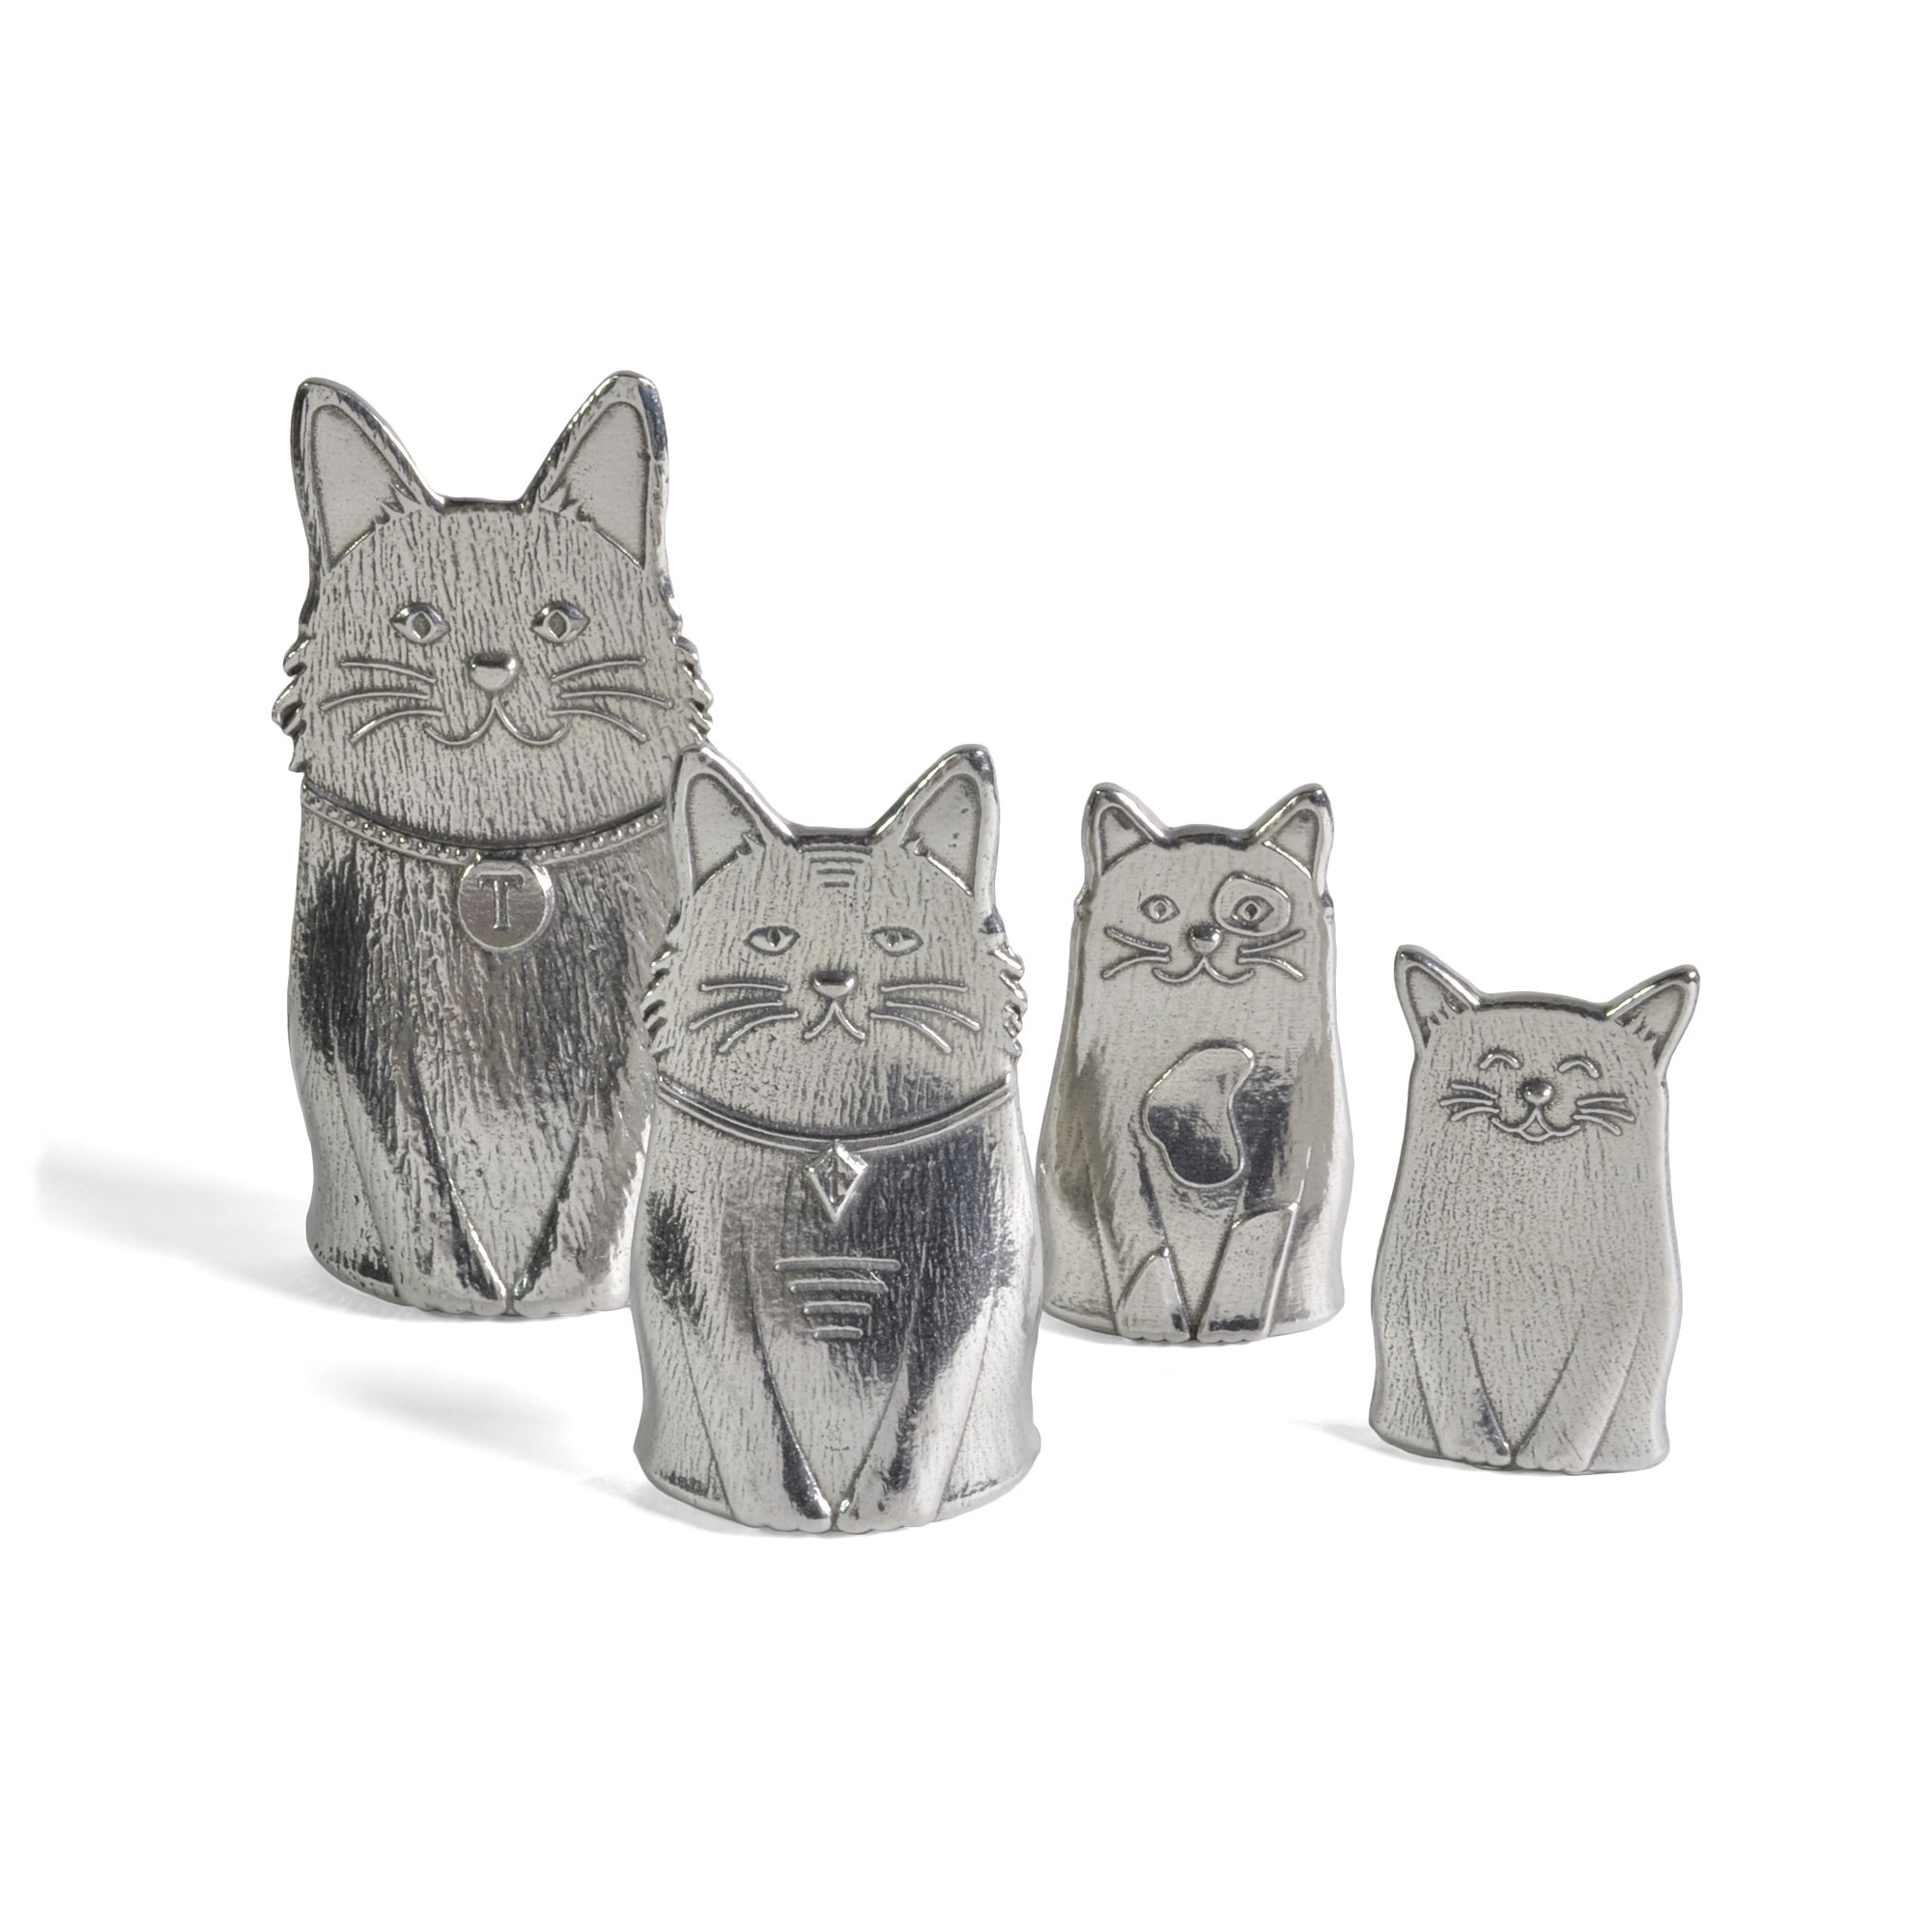 Roosfoos Pewter Cat Measuring Spoons by Roosfoos